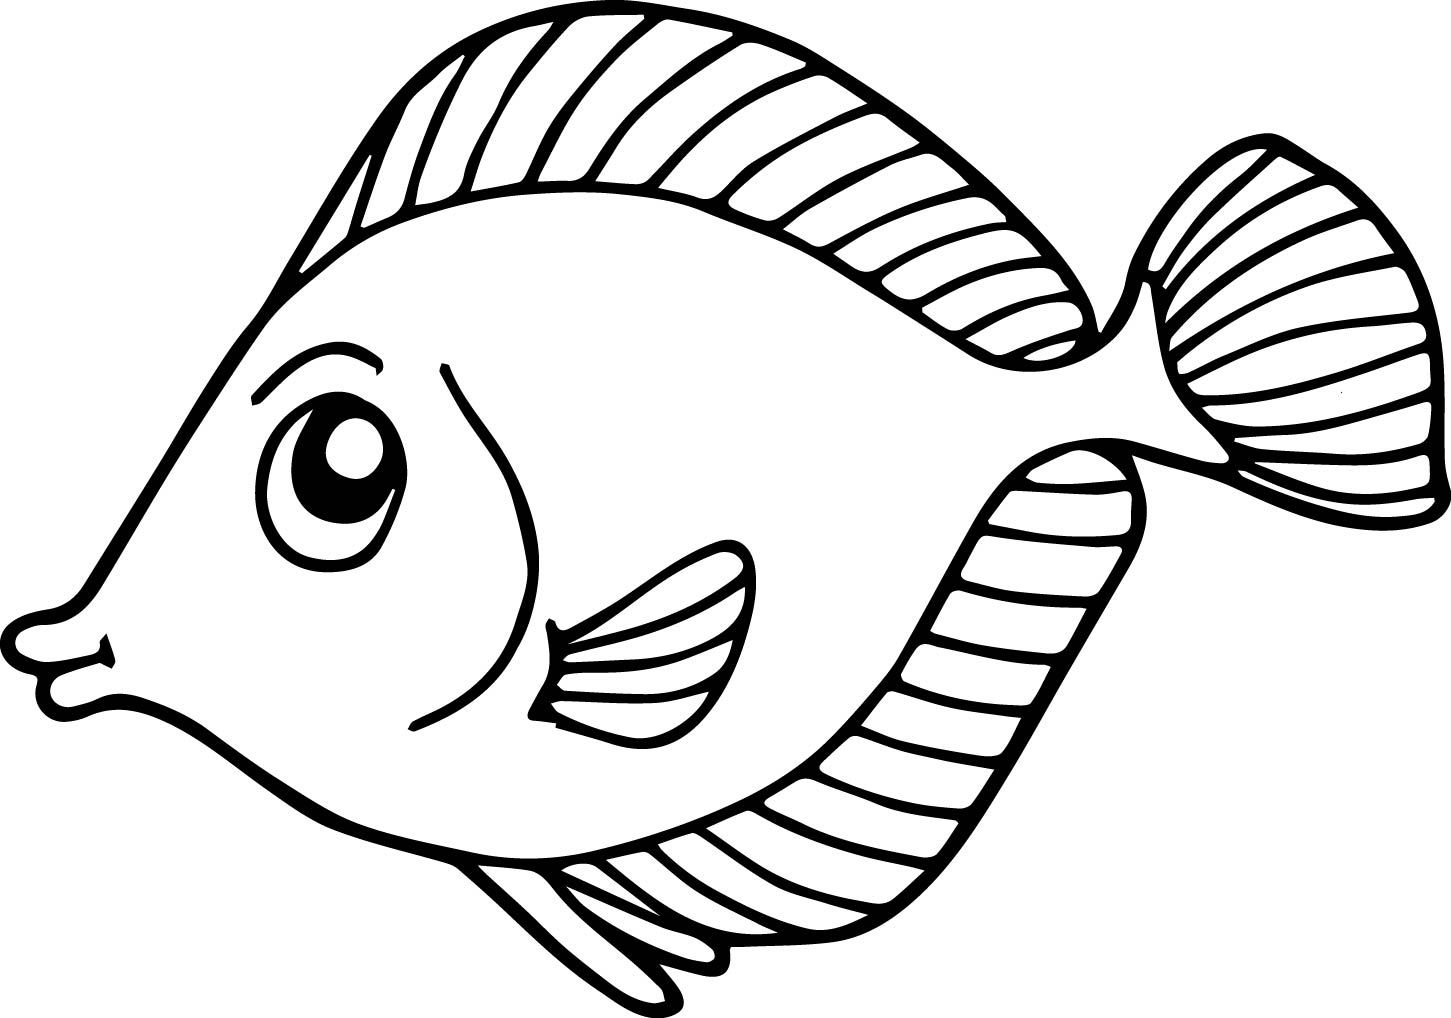 fish coloring for kids fish coloring pages for kids preschool and kindergarten fish coloring for kids